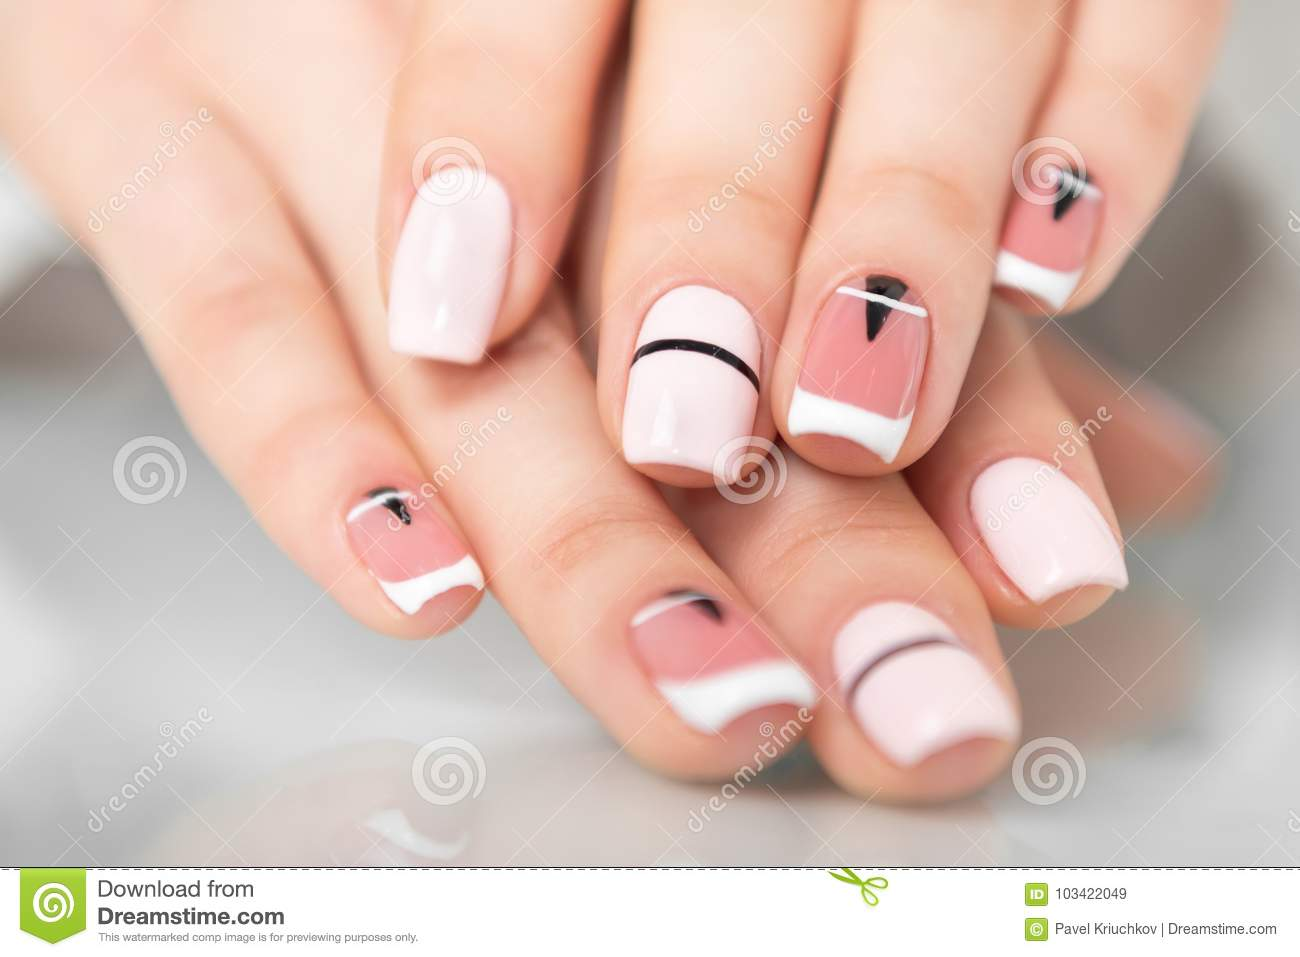 Beautiful Female Hands With A Fashionable Manicure Geometric Design